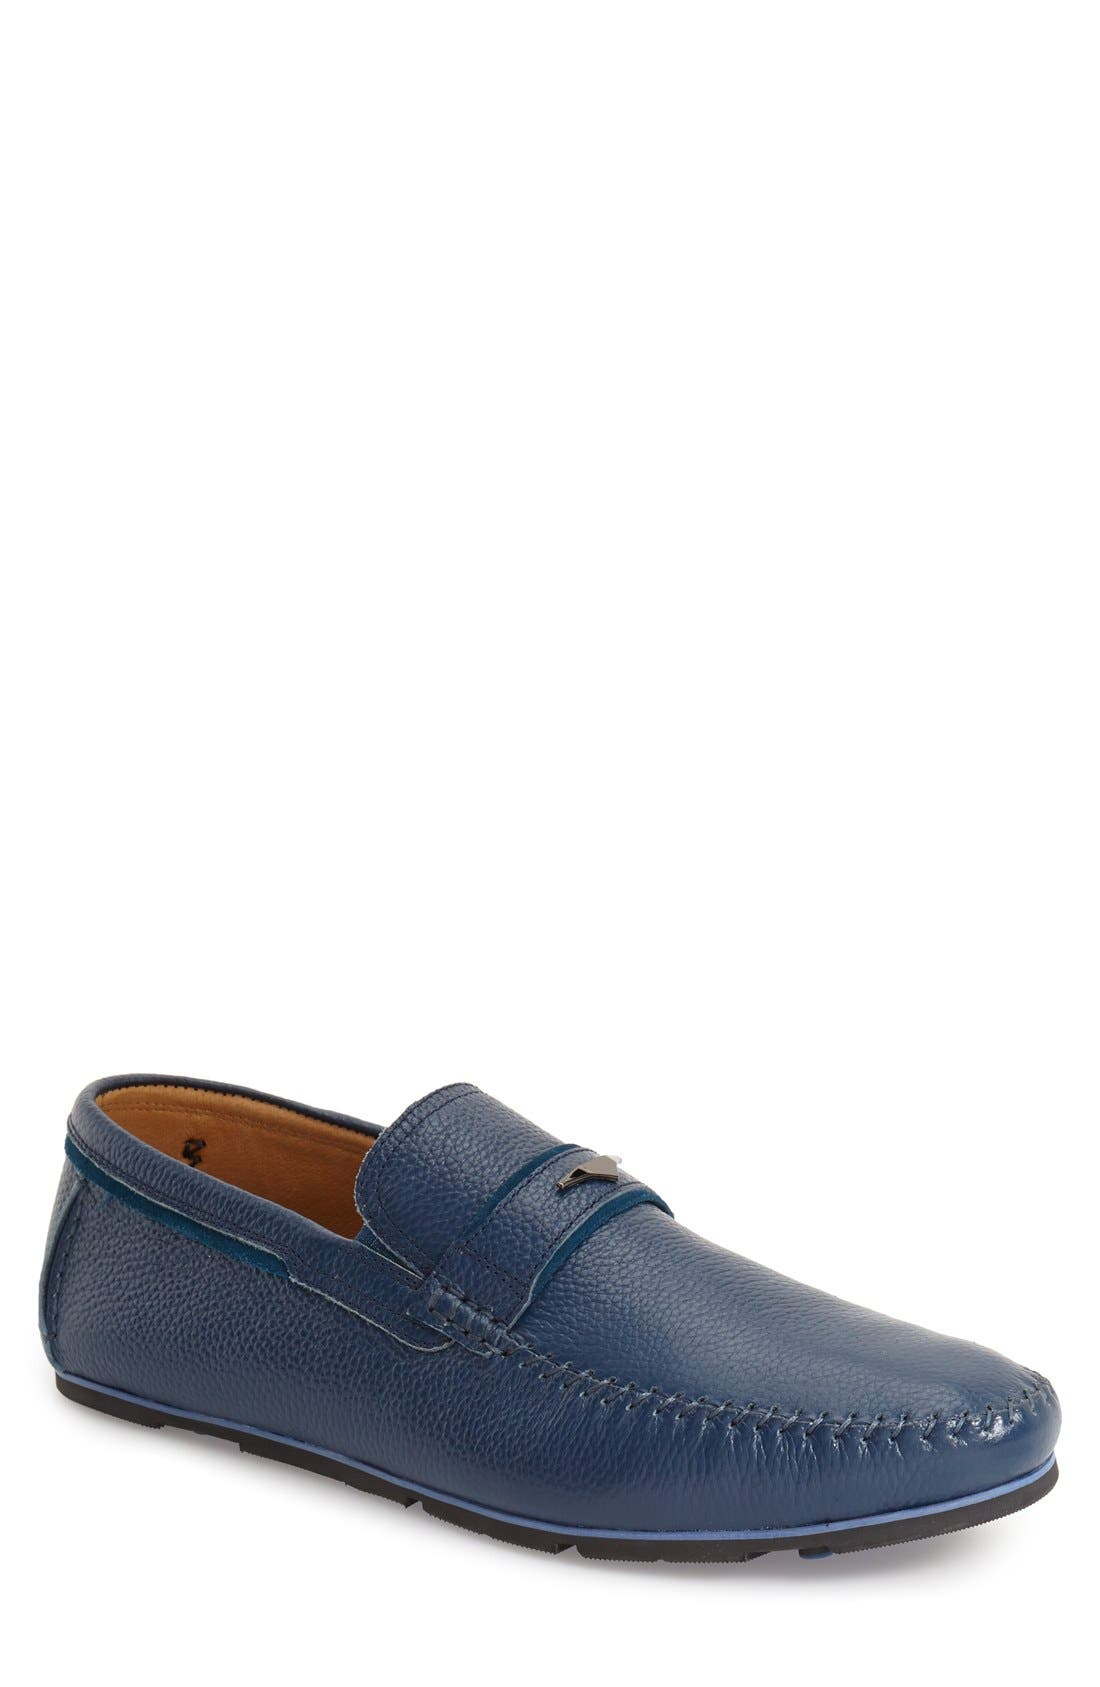 Zanzara Leather Loafer (Men)